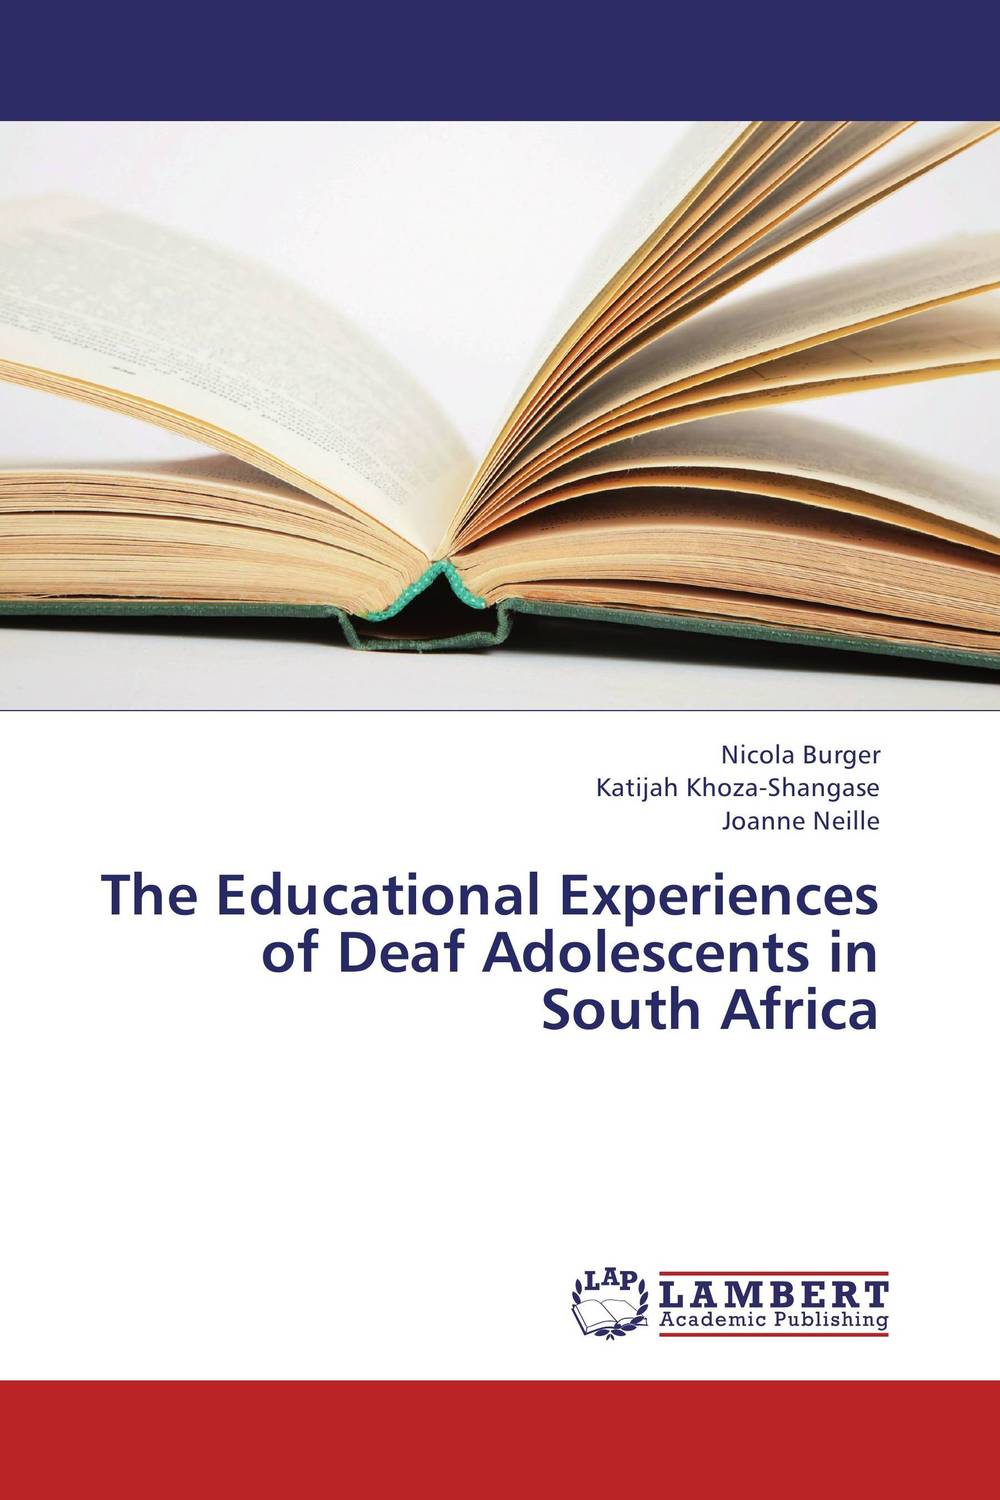 The Educational Experiences of Deaf Adolescents in South Africa азбука класс о салтыков щедрин сказки